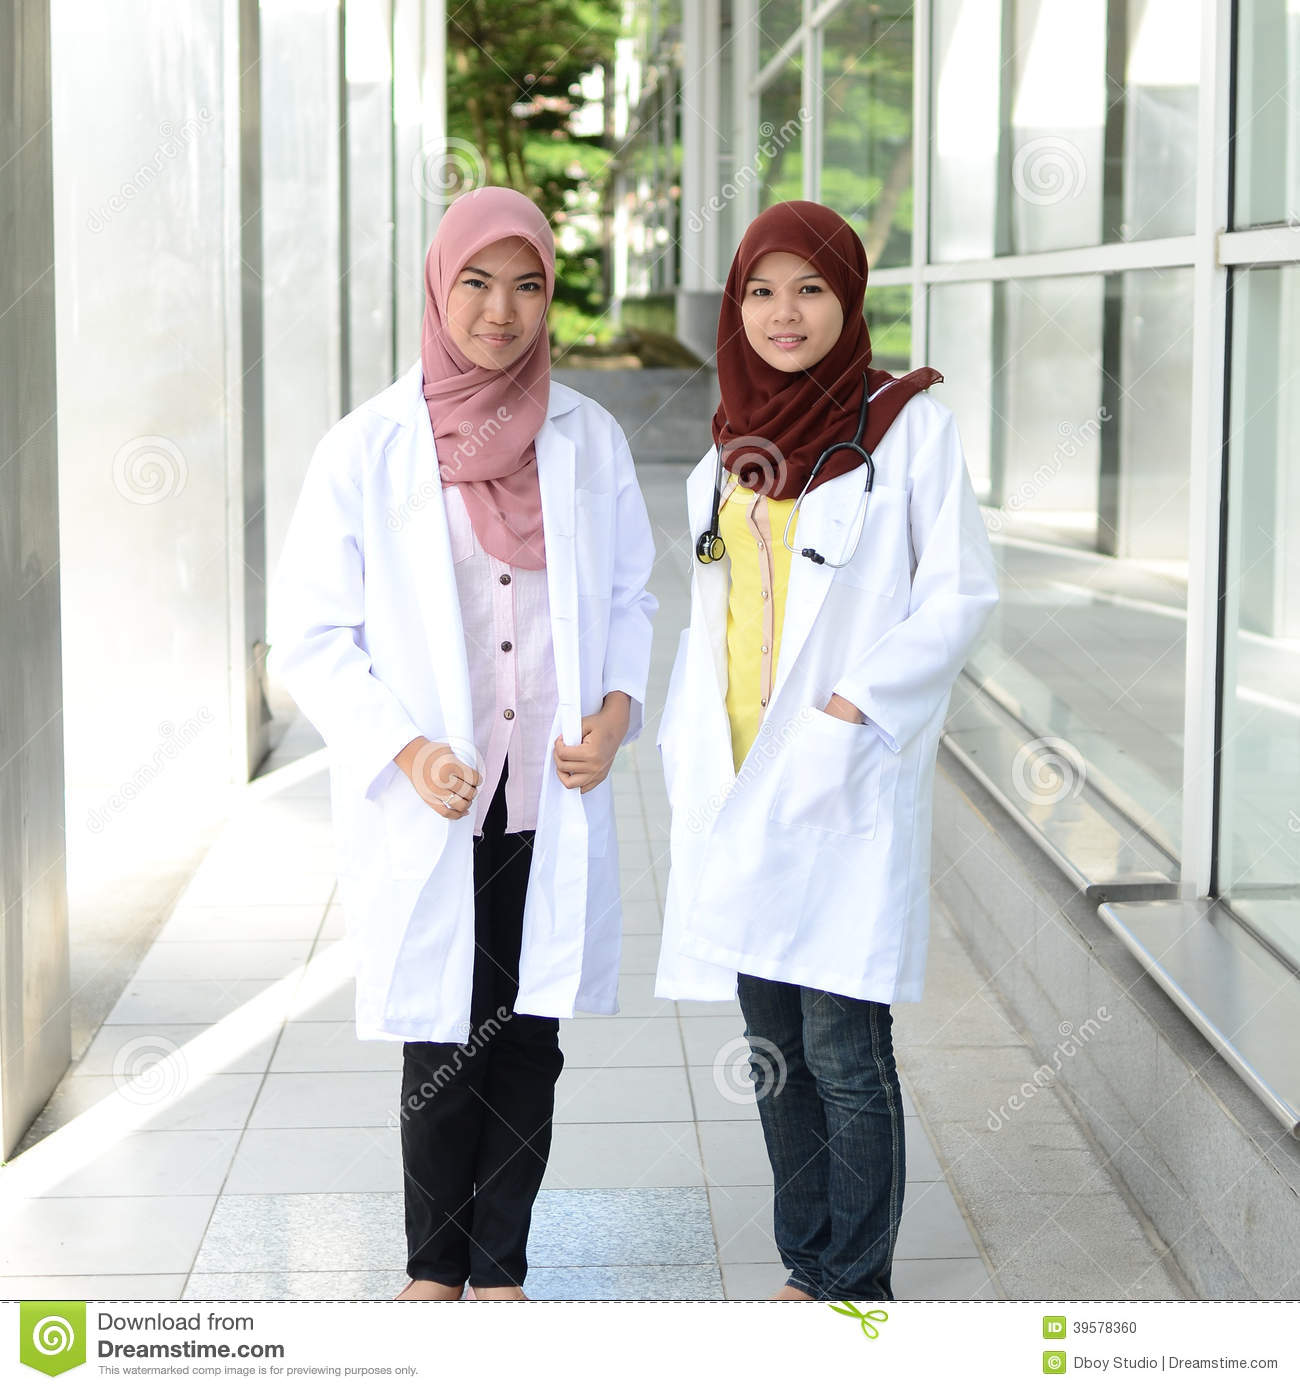 medical student dating doctor How to write a cv if you are a physician or medical student, here are tips for creating an effective curriculum vitae sample format and more.